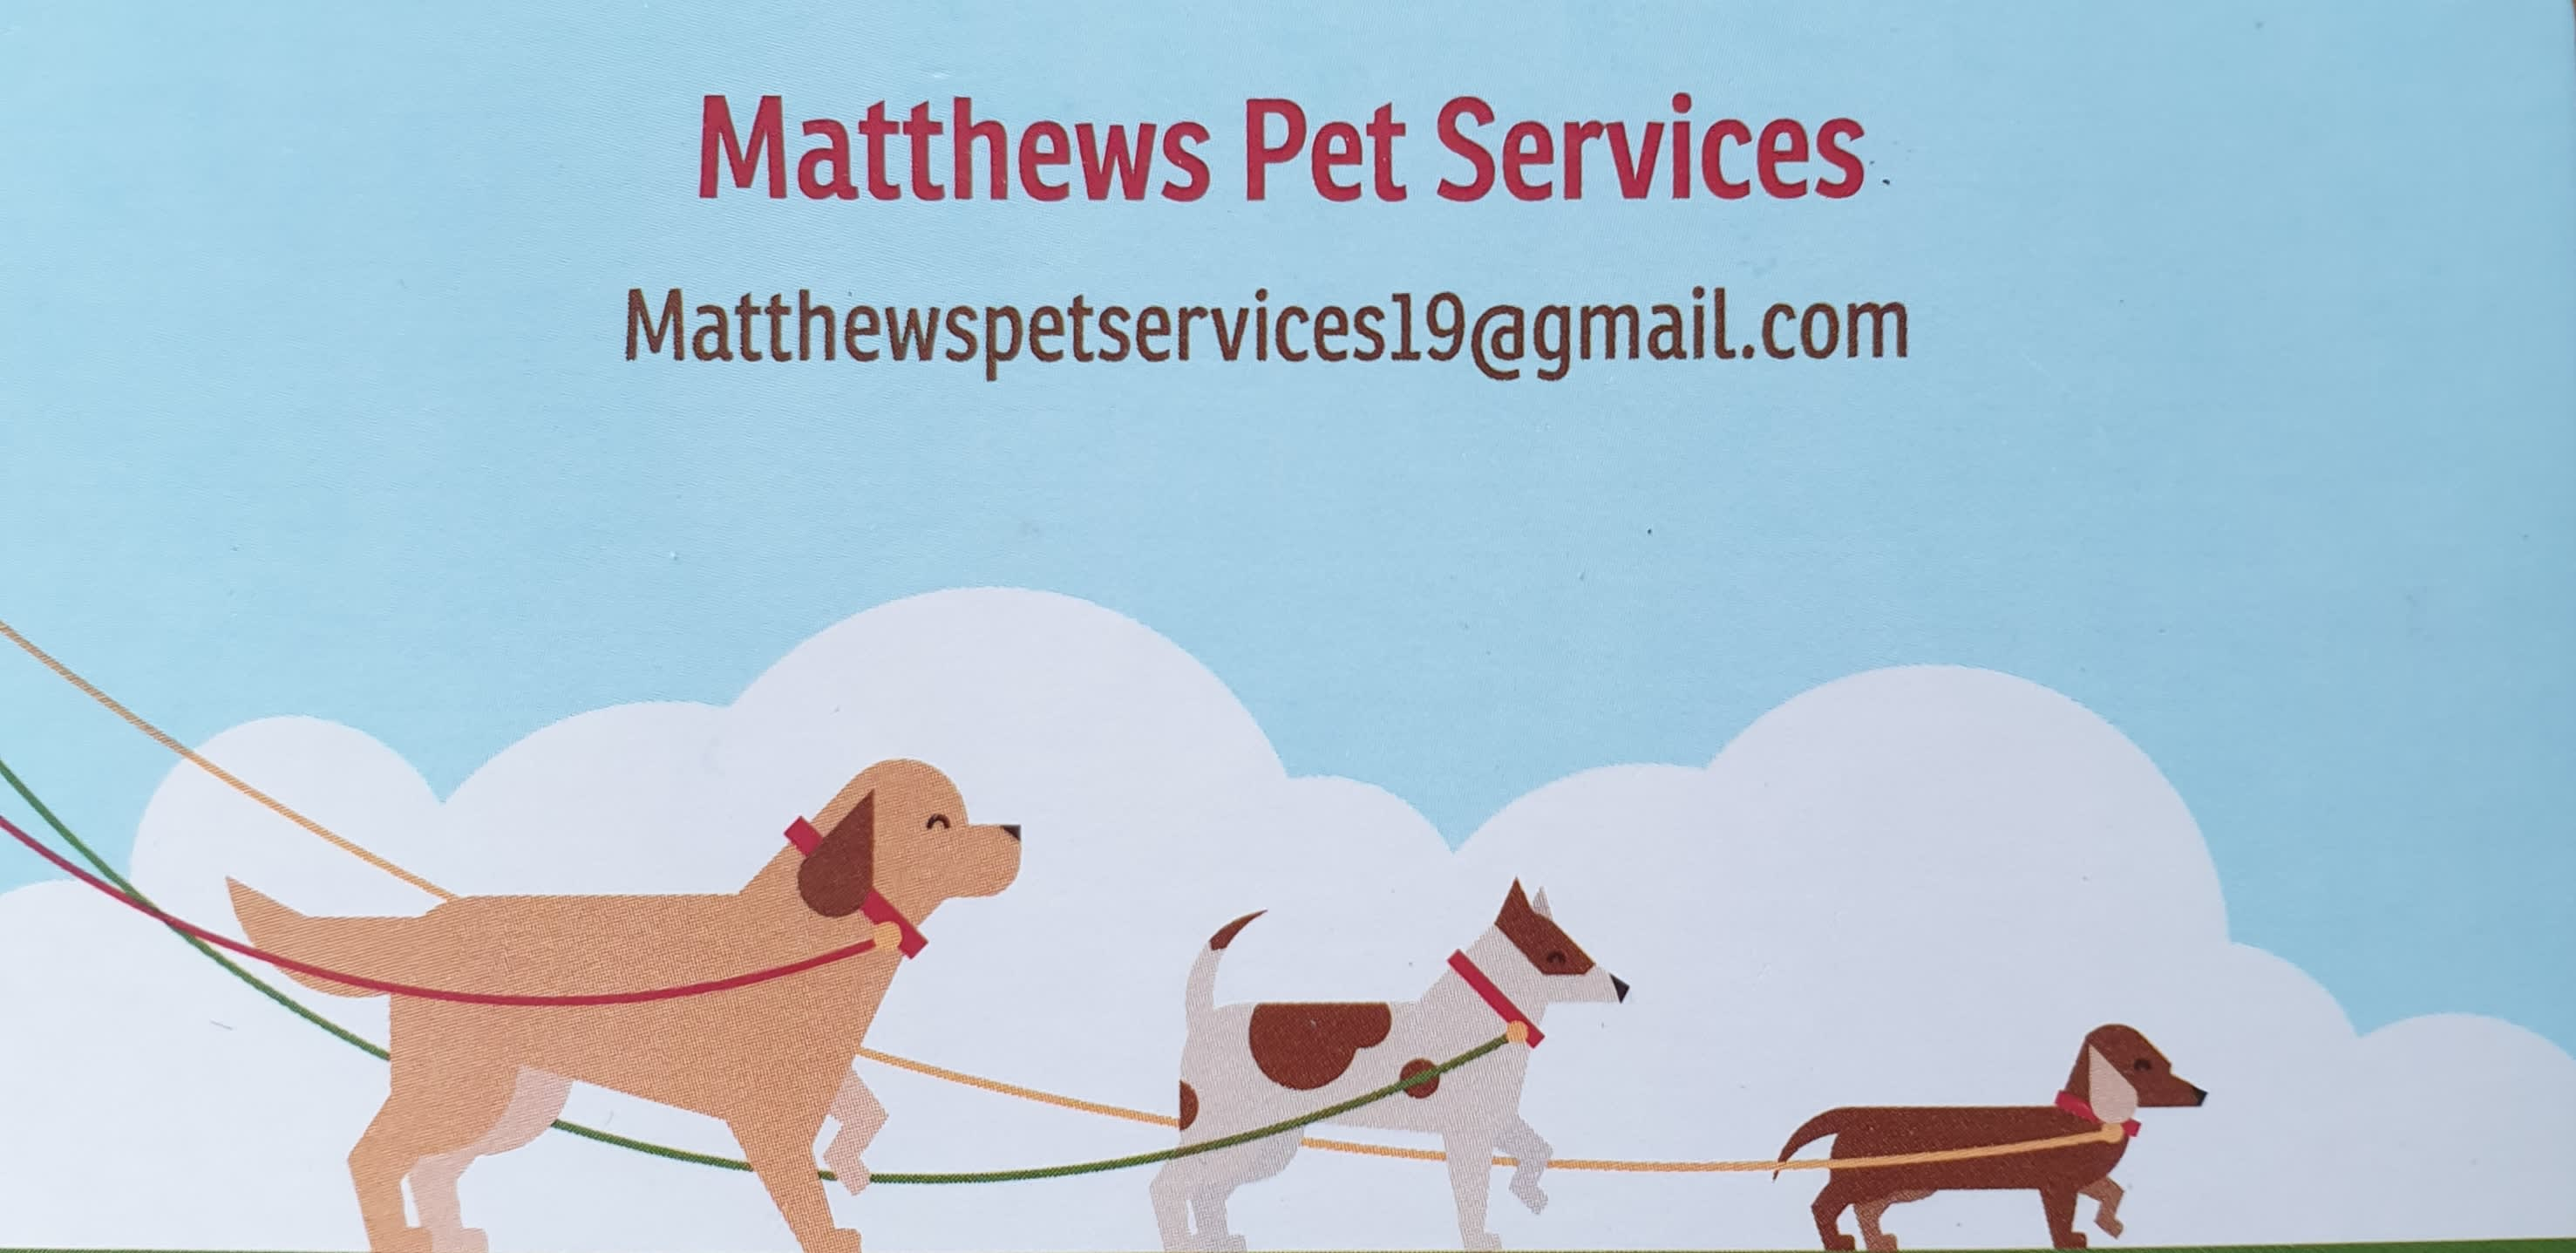 Matthew's Pet Services